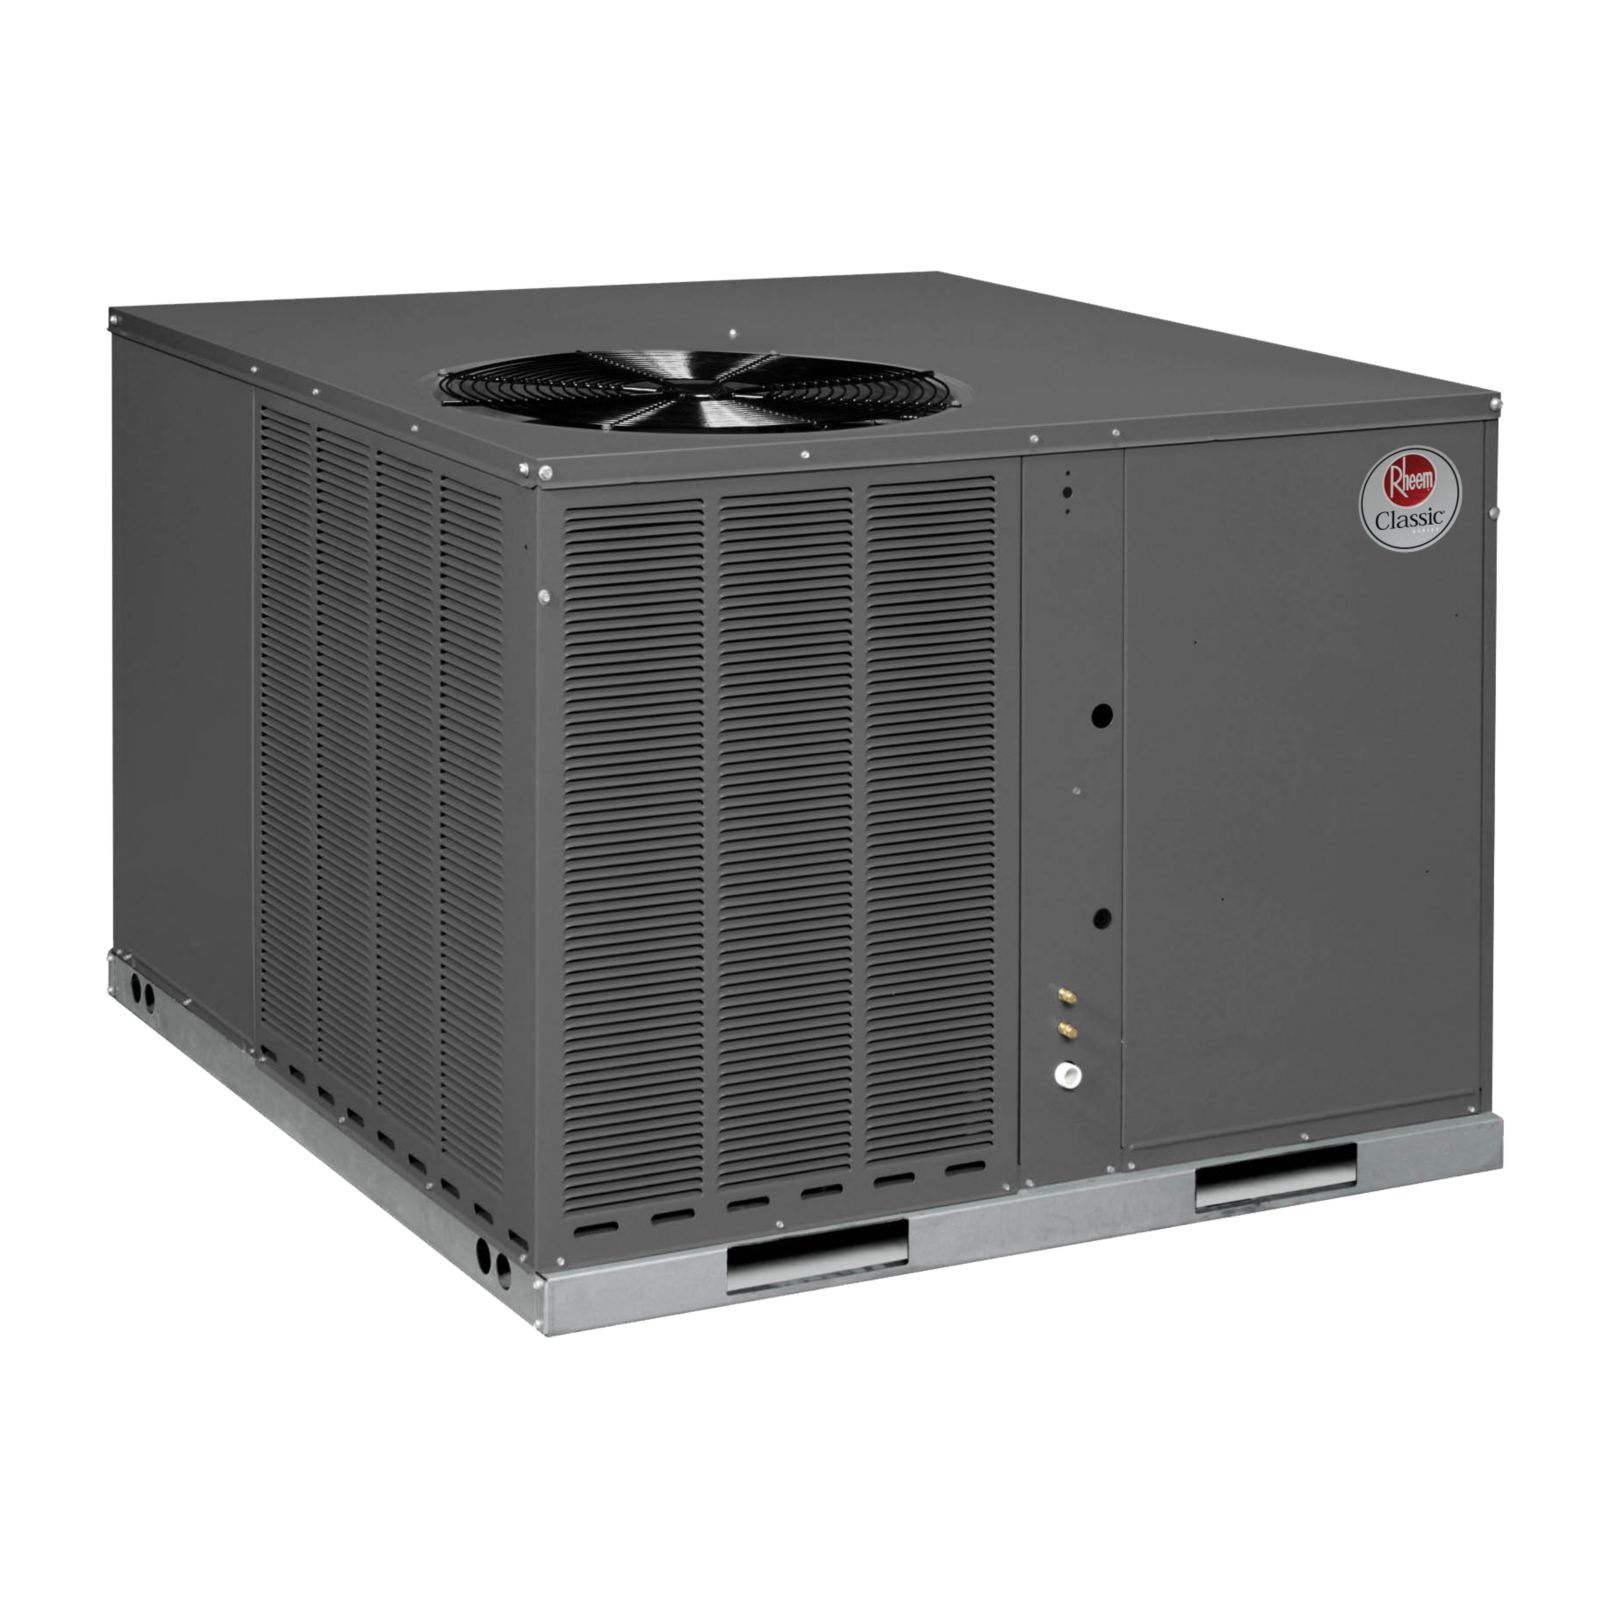 Rheem RQPL-B042JK000AUA - 3 1/2 Ton 14 SEER, R-410A, Packaged Heat Pump, 208-230V, 1 Phase